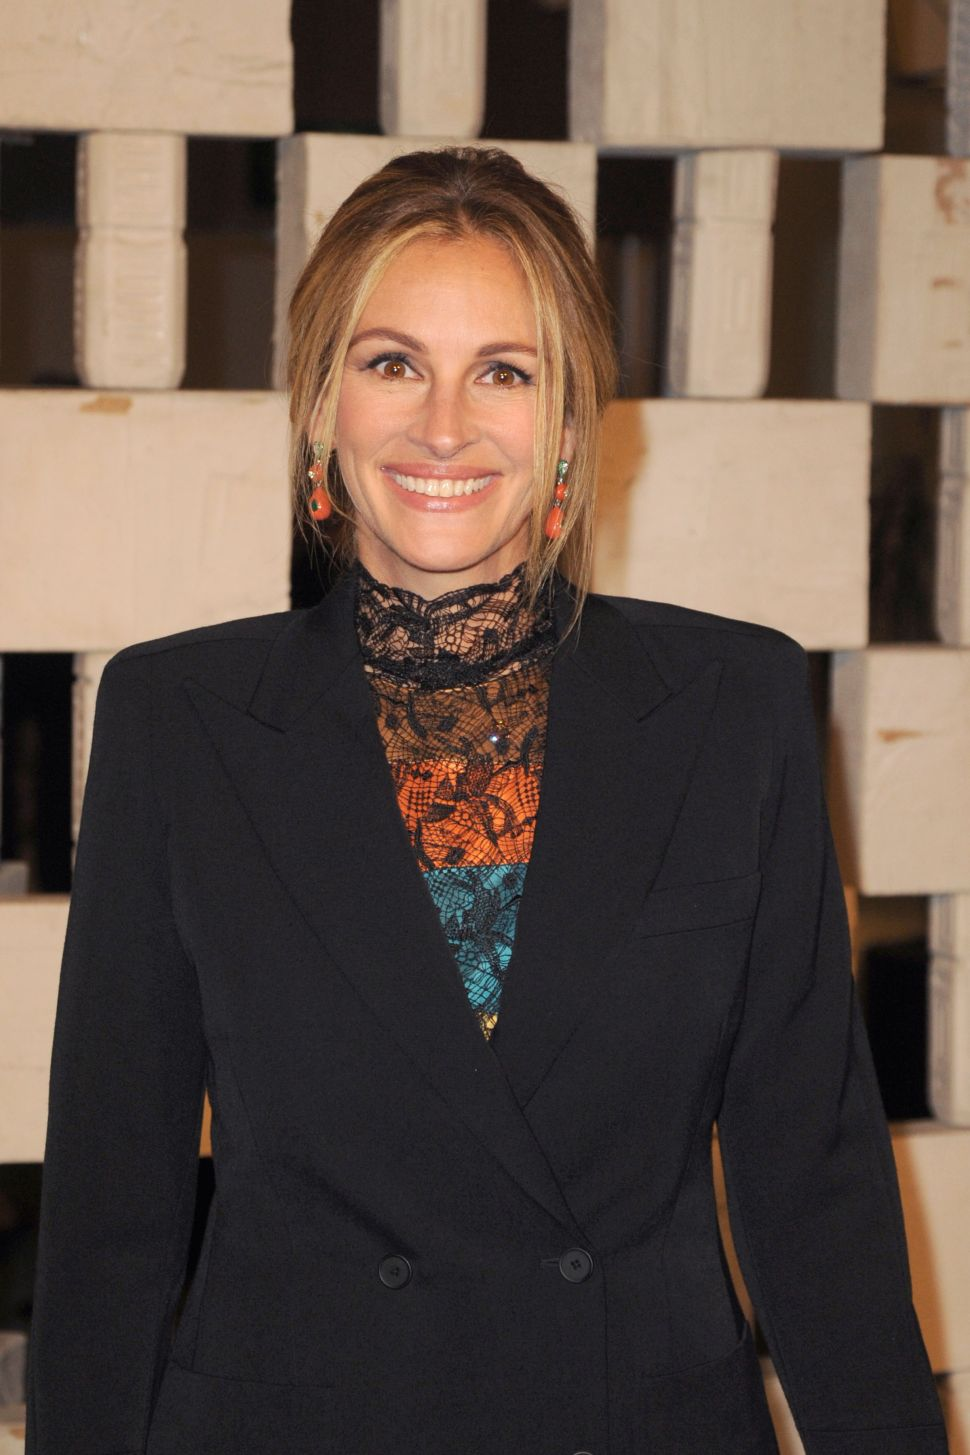 Julia Roberts Sells Greenwich Village Pad 16 Days After Putting it on the Market